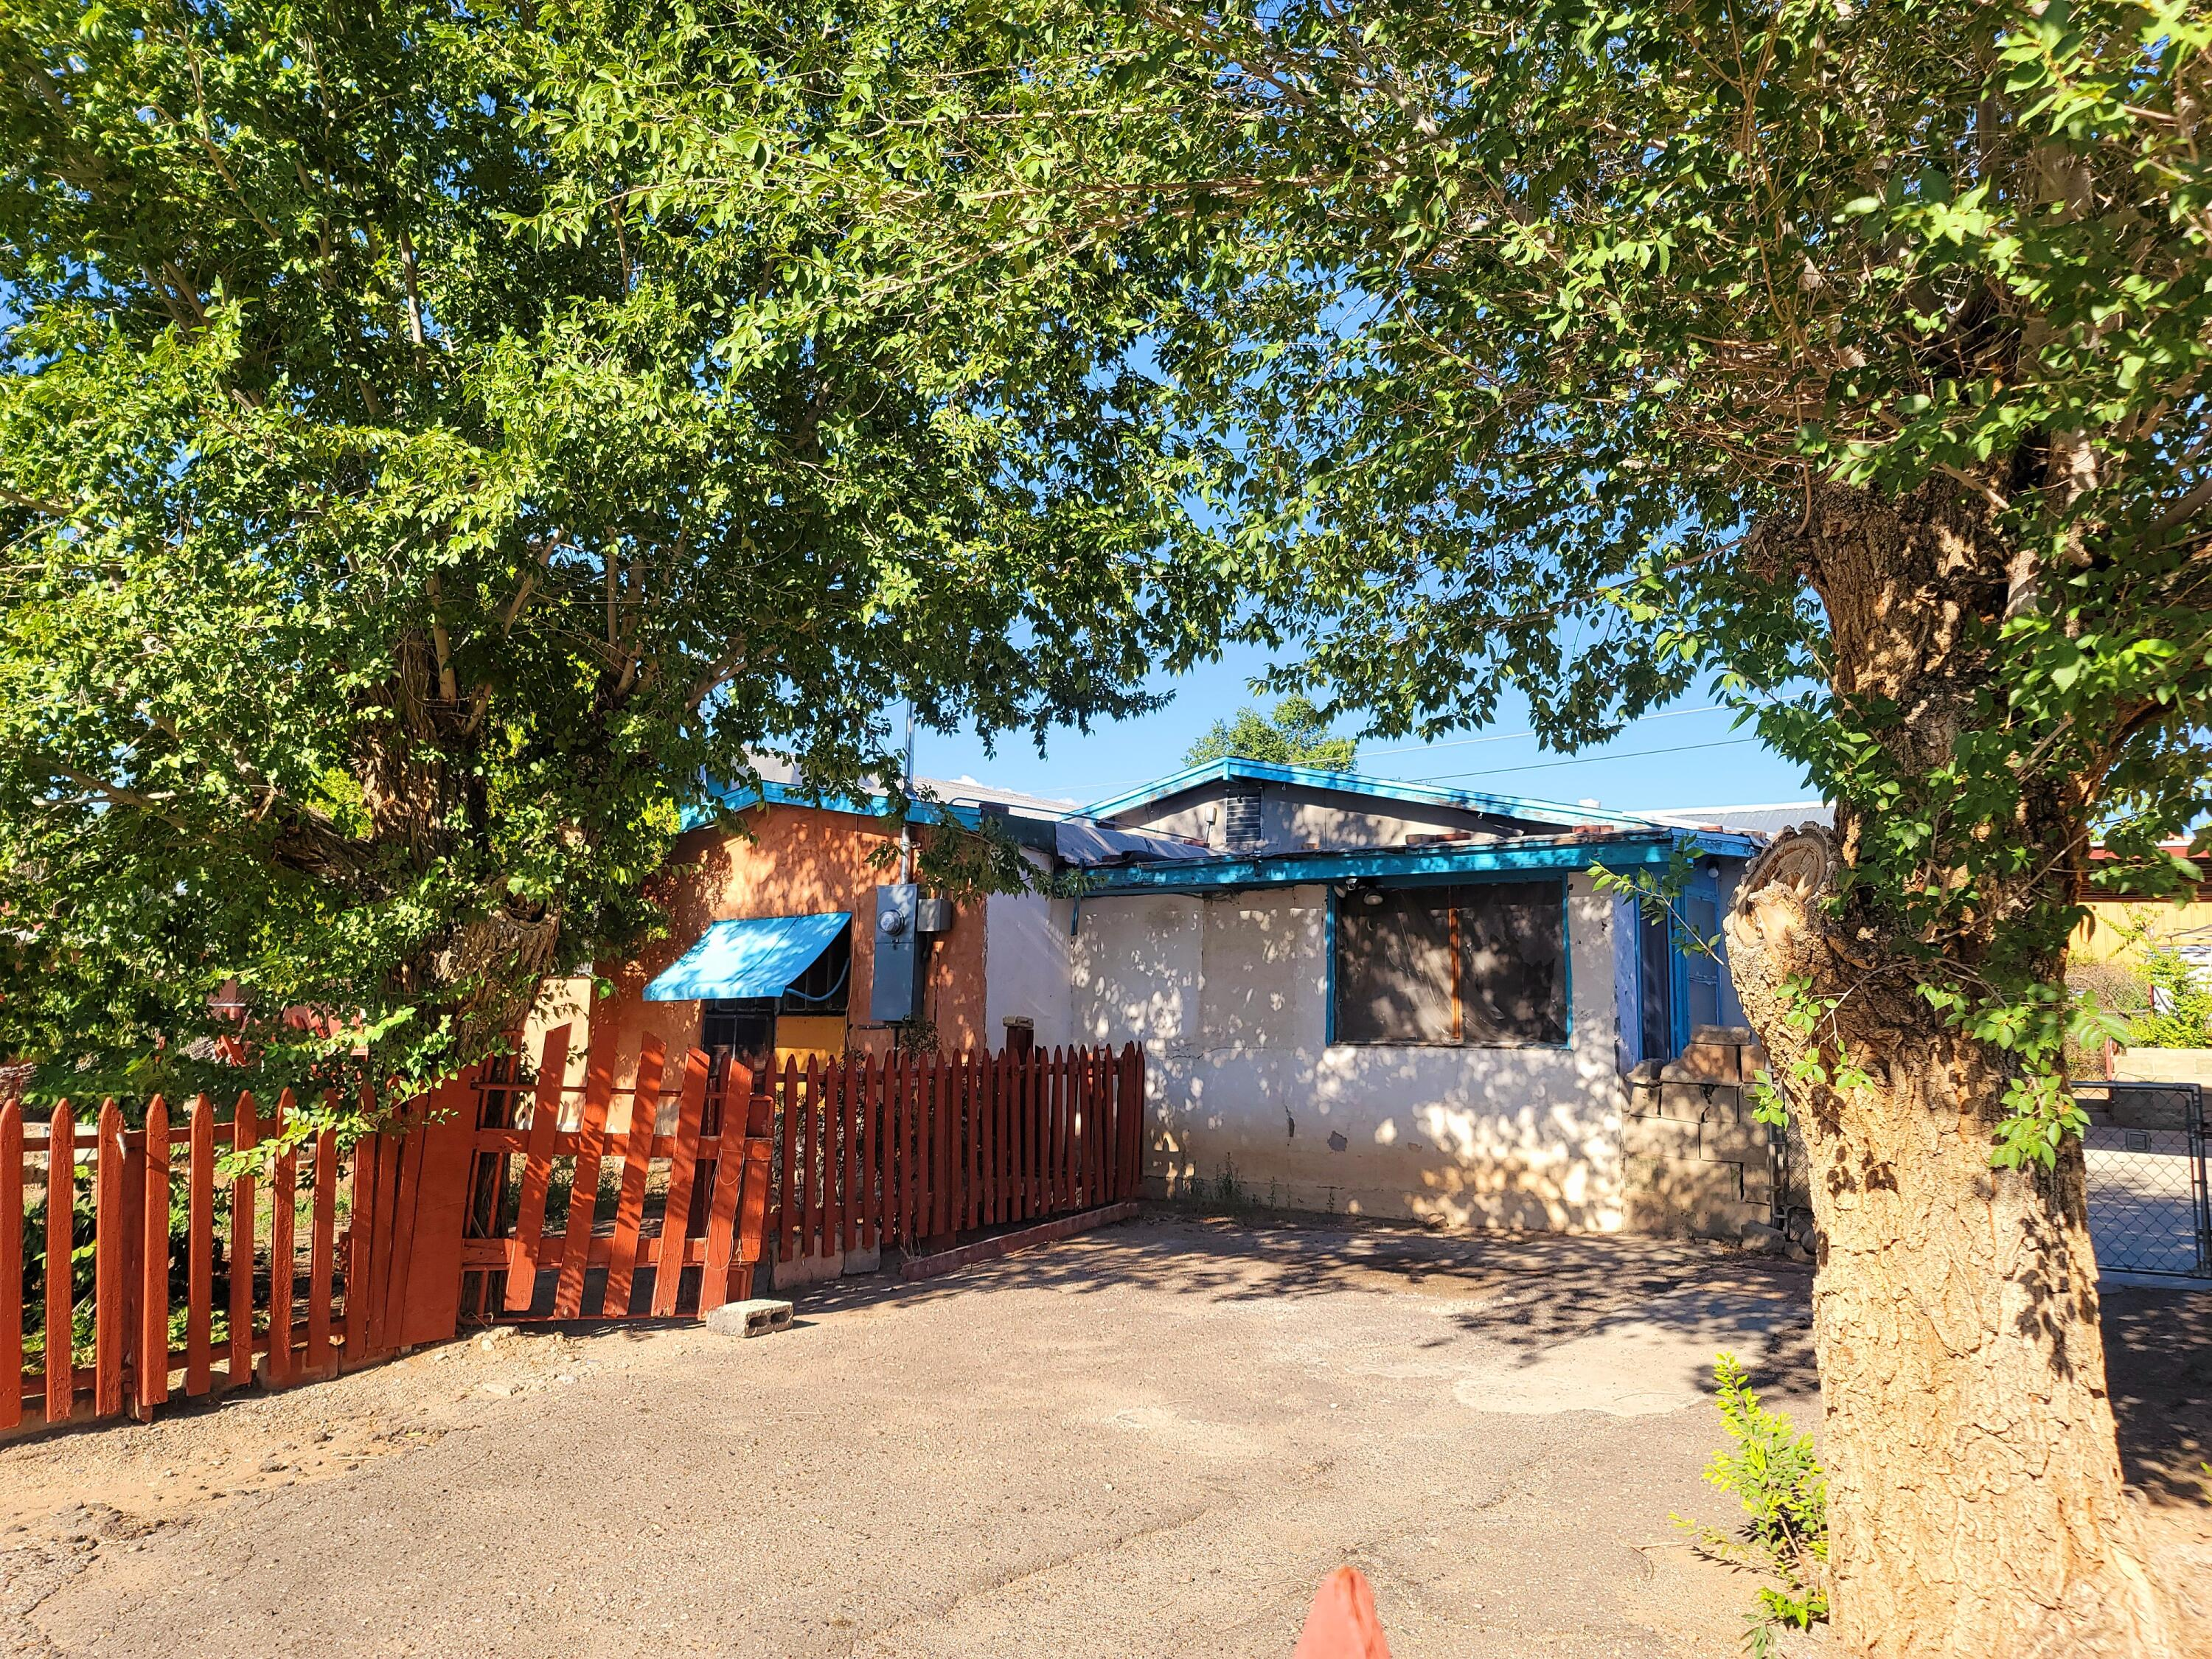 Great investment opportunity in the Northwest Valley! Four bedrooms 2 baths and 2 living areas. This spacious home has plenty of space inside and out and is ready for just a little TLC to make this house a home! Set up your viewing appointment now!